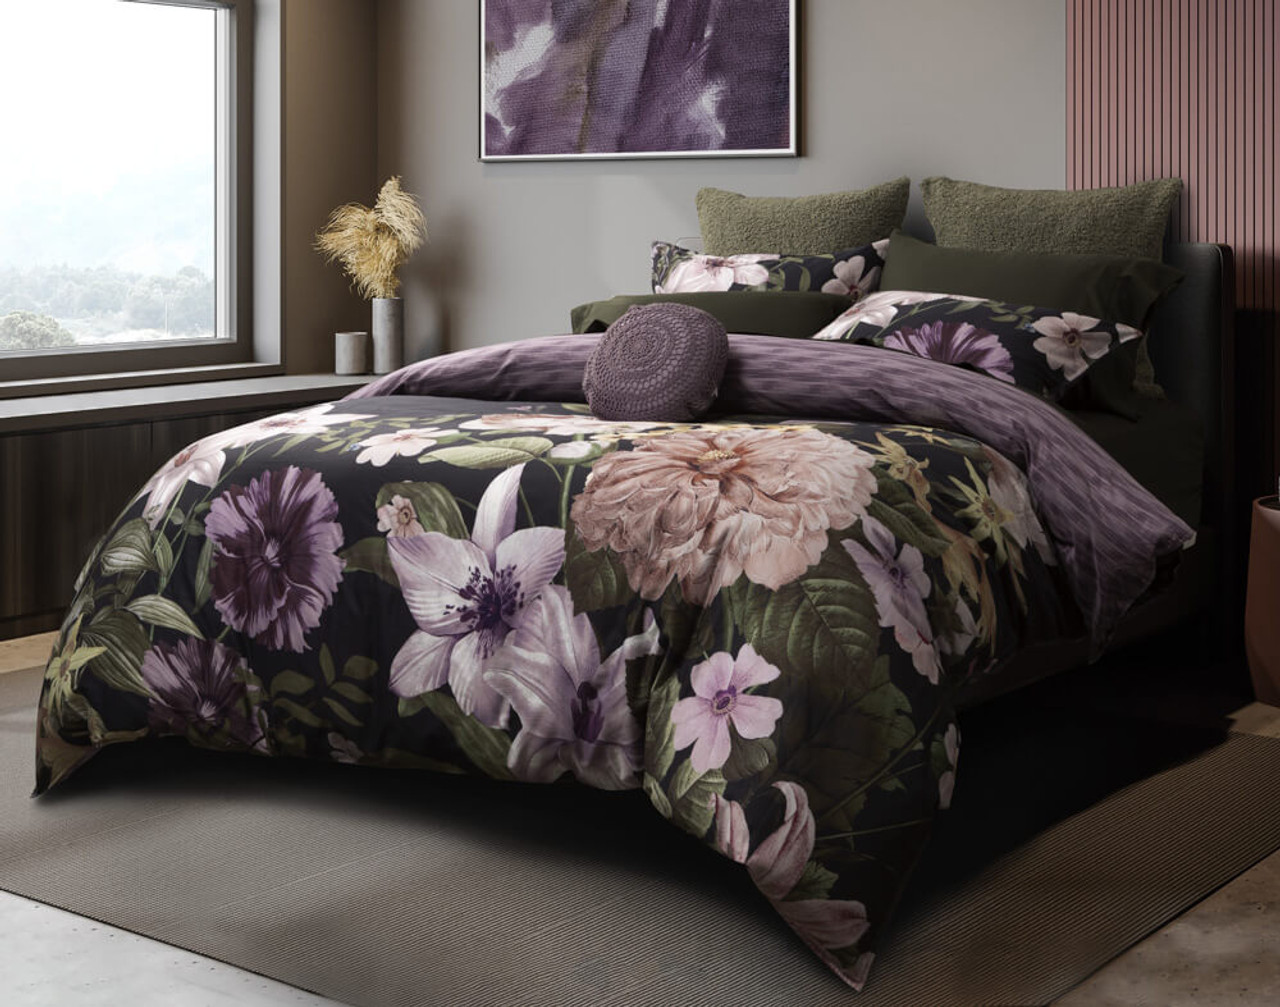 Our Greta Floral Duvet Cover features dark purples and rainforest greens on a deep black background.